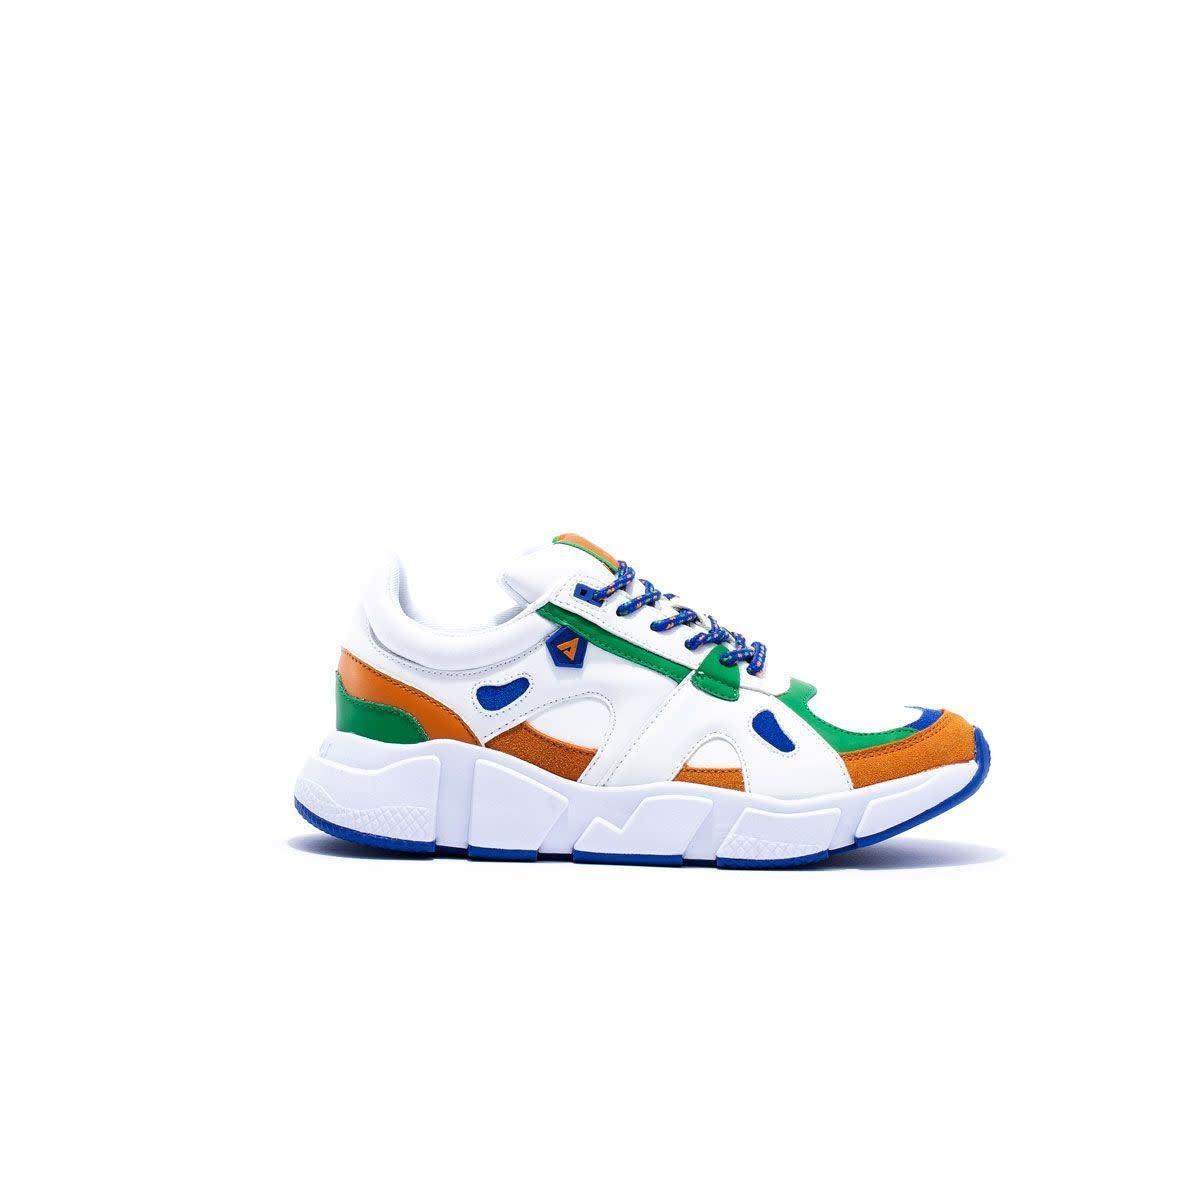 ASFVLT Sneakers Asfvlt Switch Sneakers White/Brown/Green/Blue